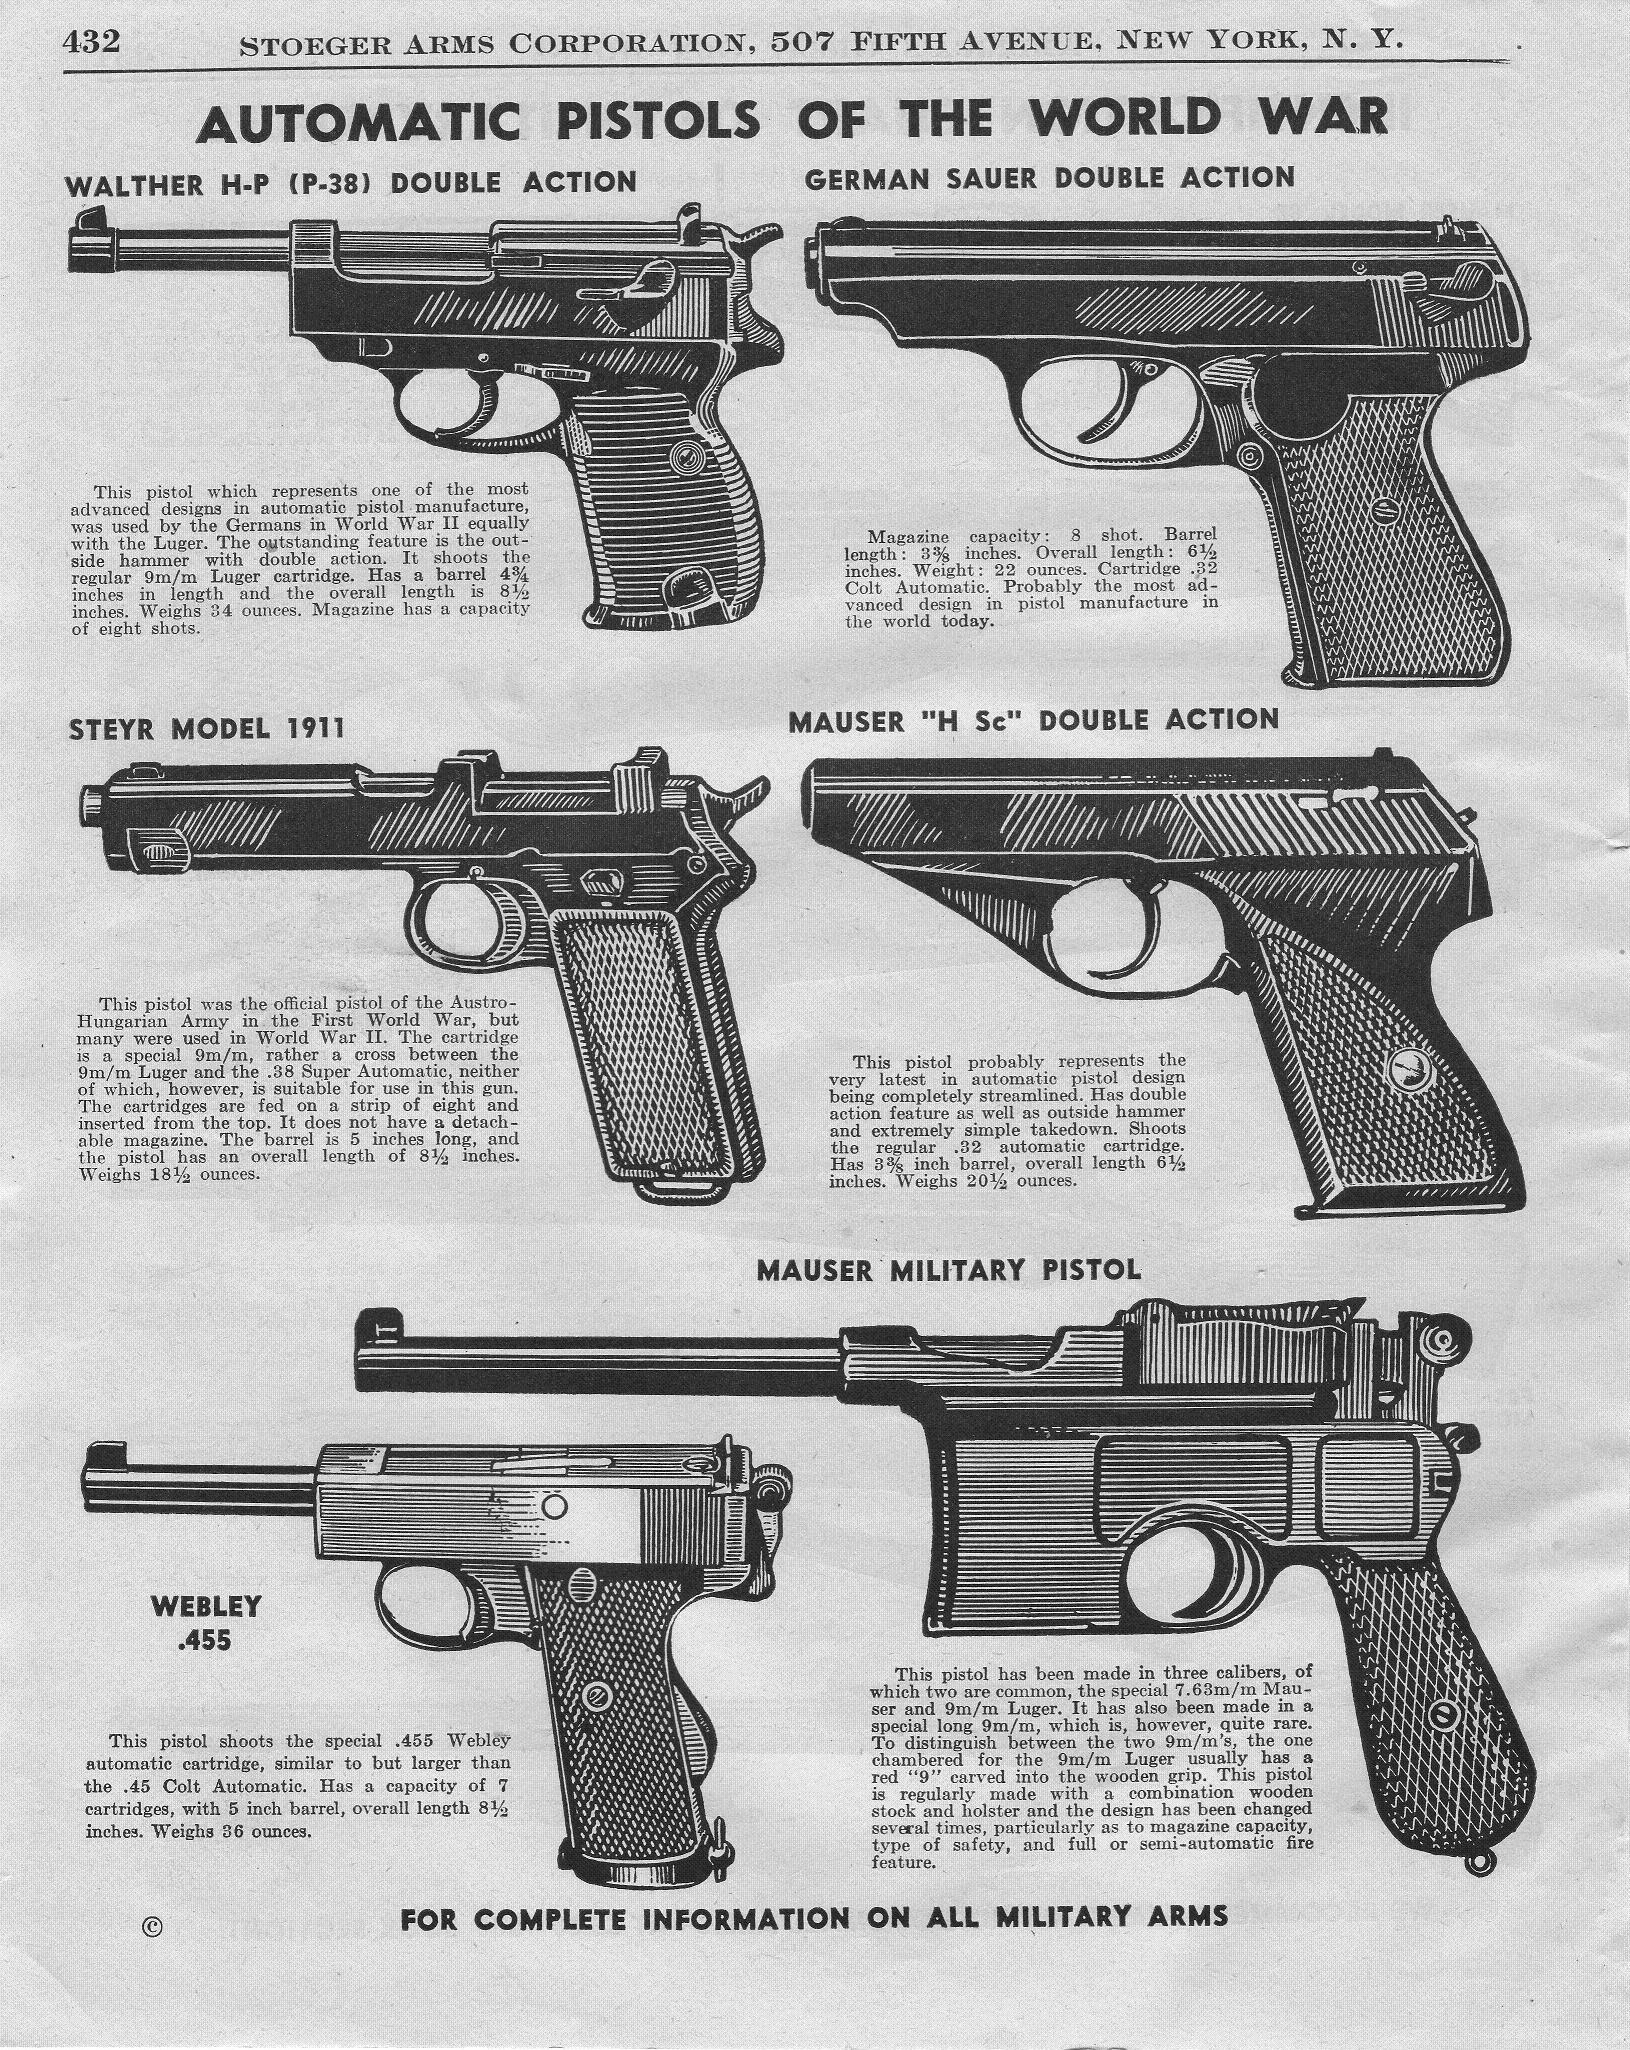 38 Best Halloween Costumes Images On Pinterest: Walther P.38 Pistol